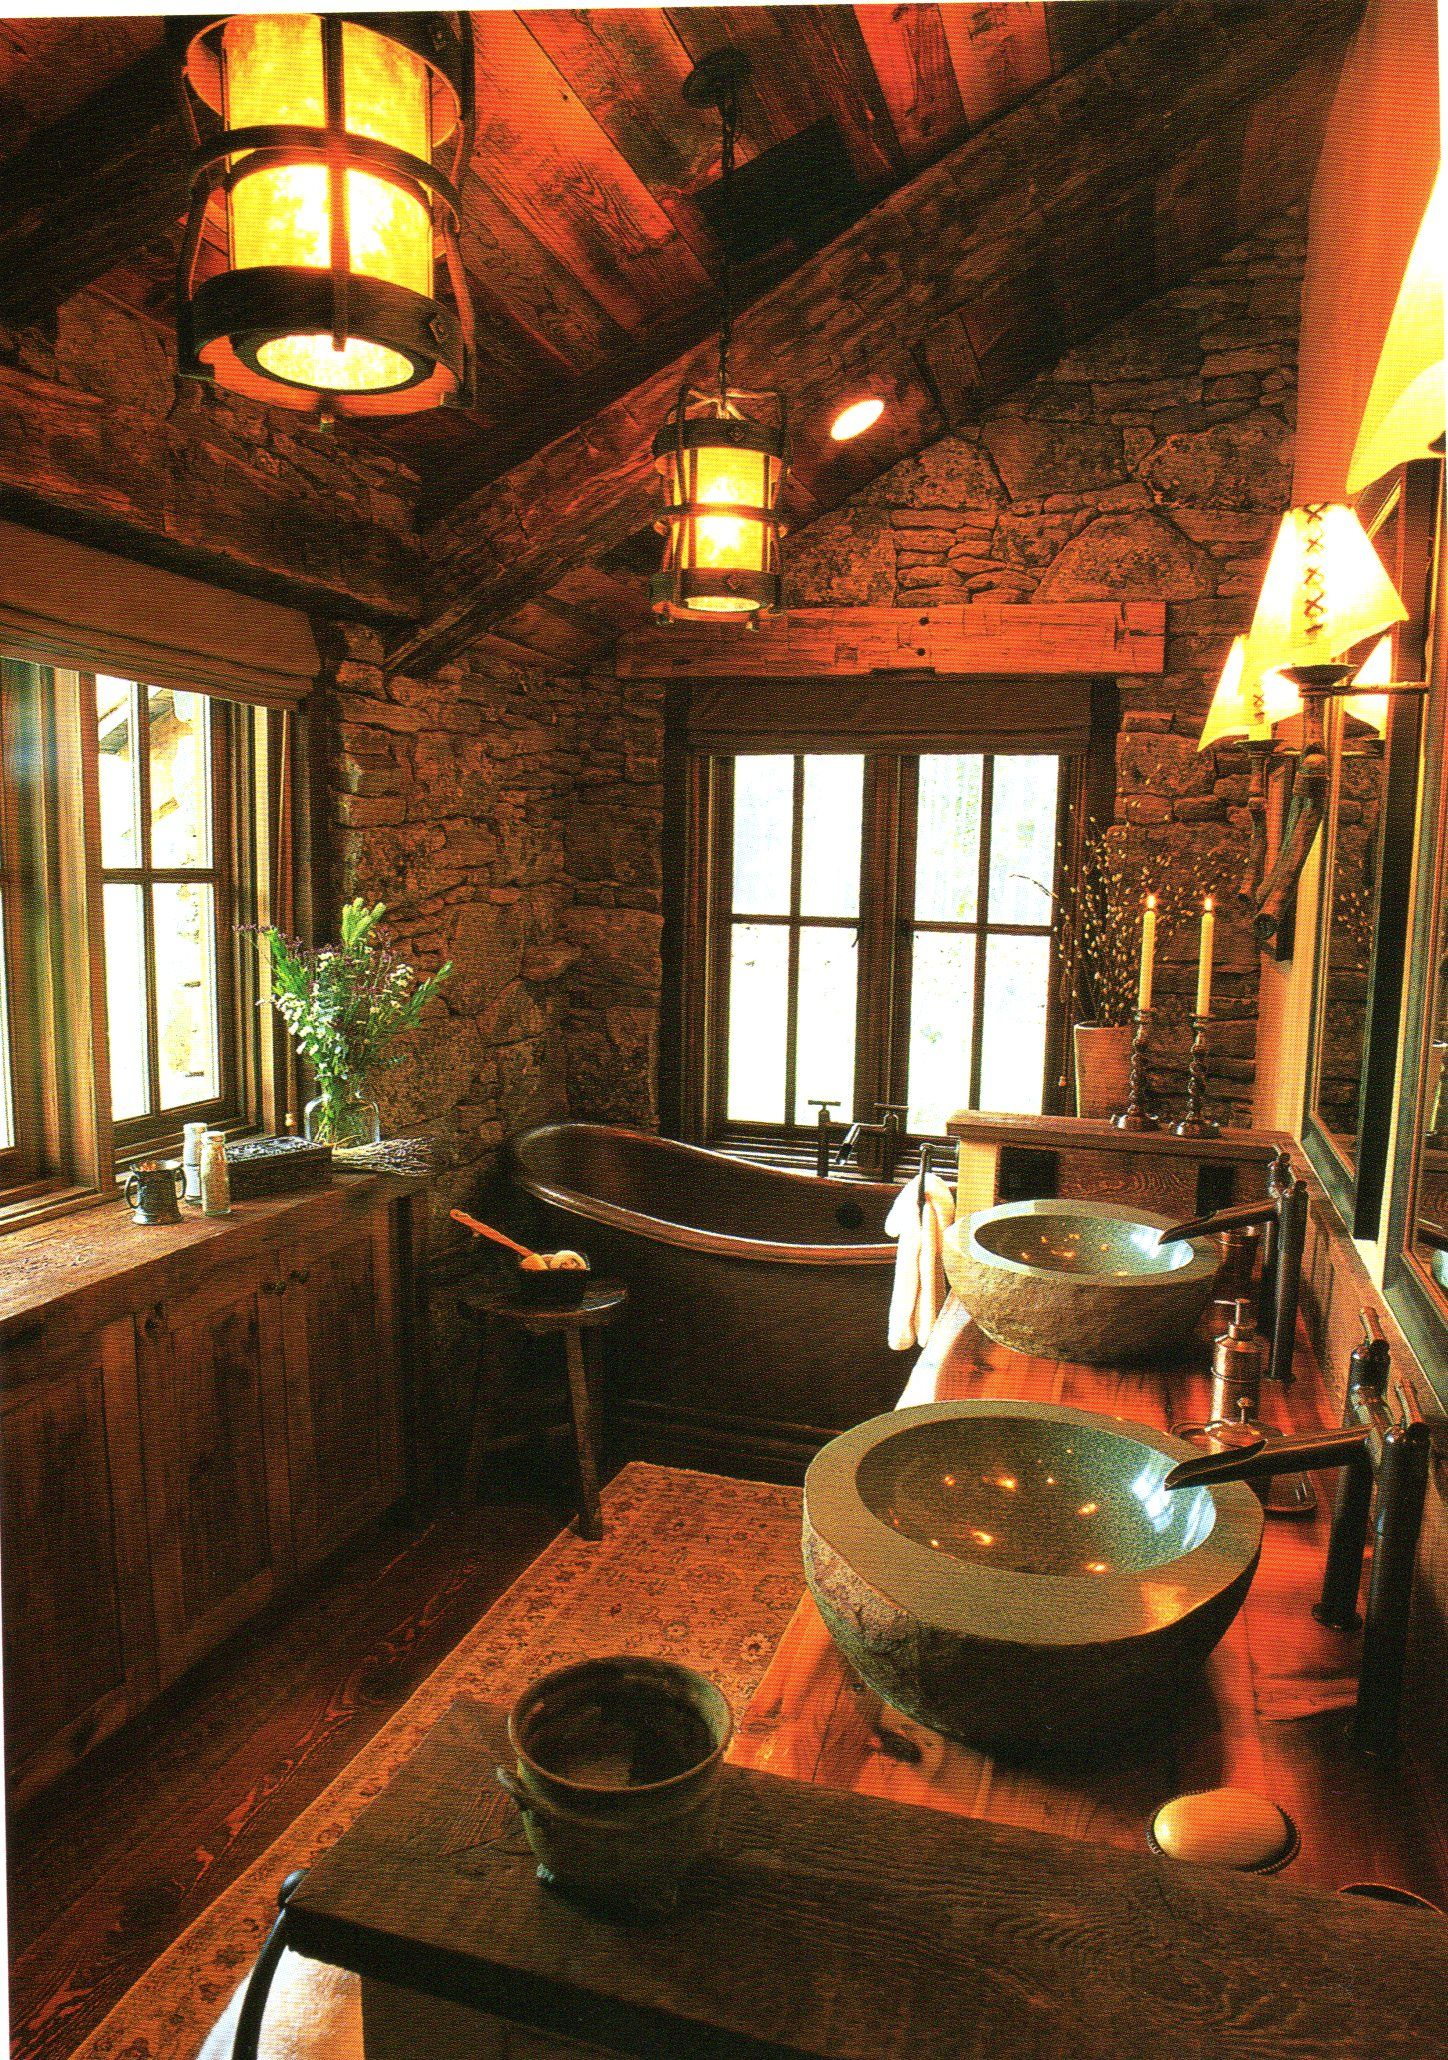 1000+ images about bathroom idaes on pinterest | log cabin